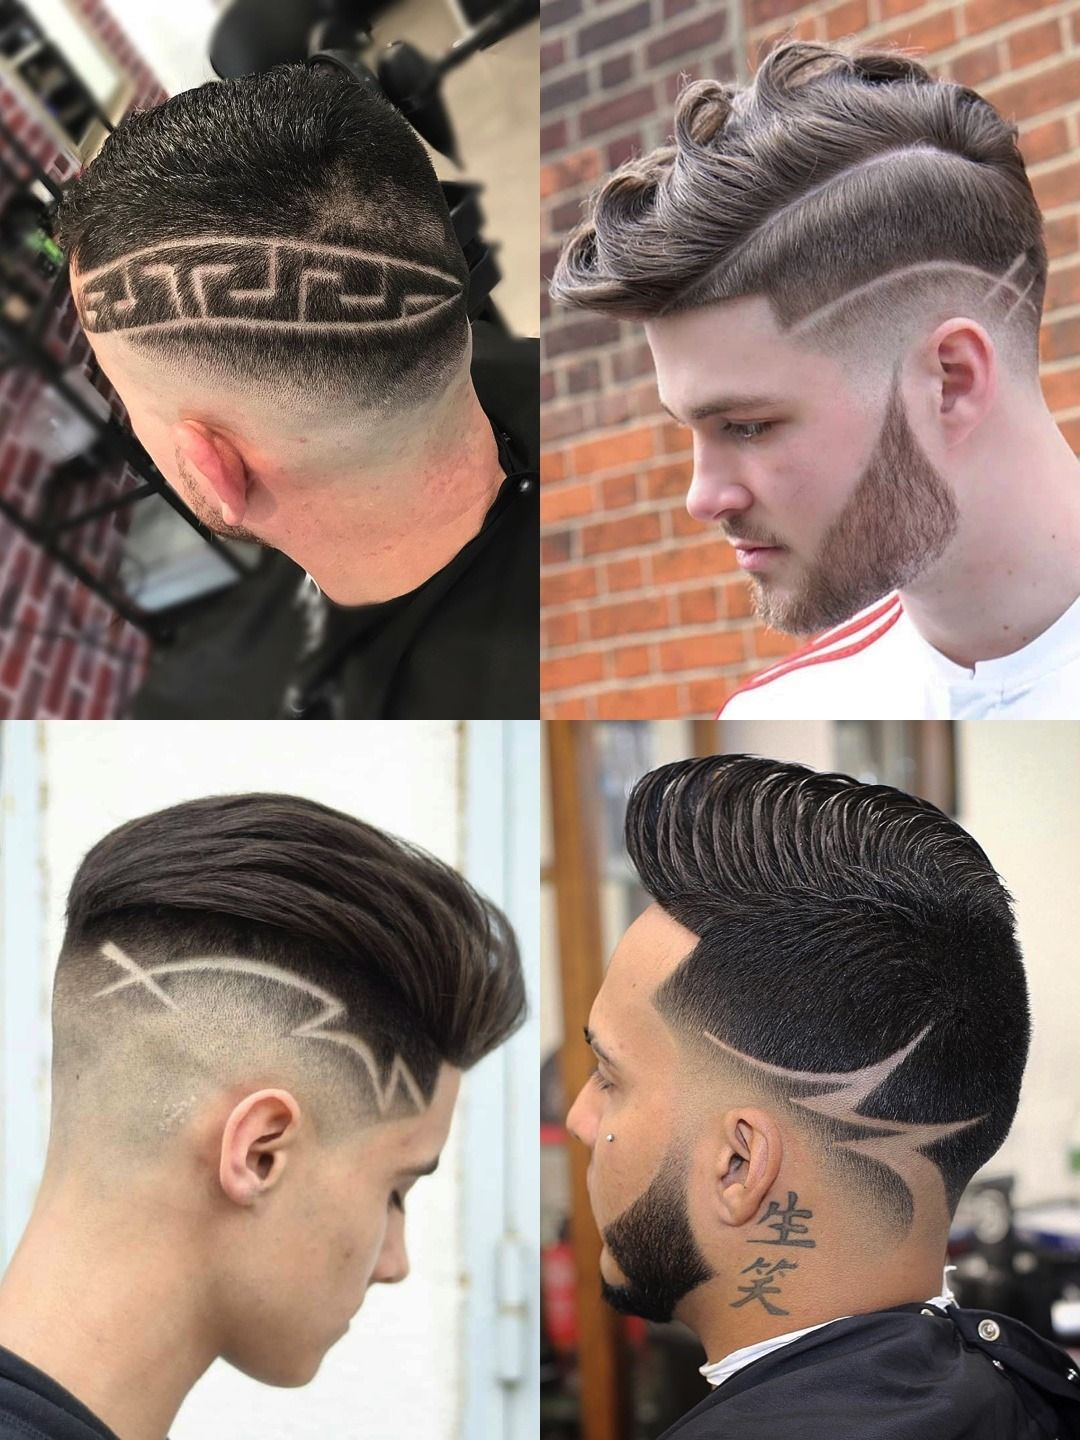 35 Awesome Design Haircuts For Men Men S Hairstyles Haircut Designs Hair Tattoo Designs Hair Designs For Men